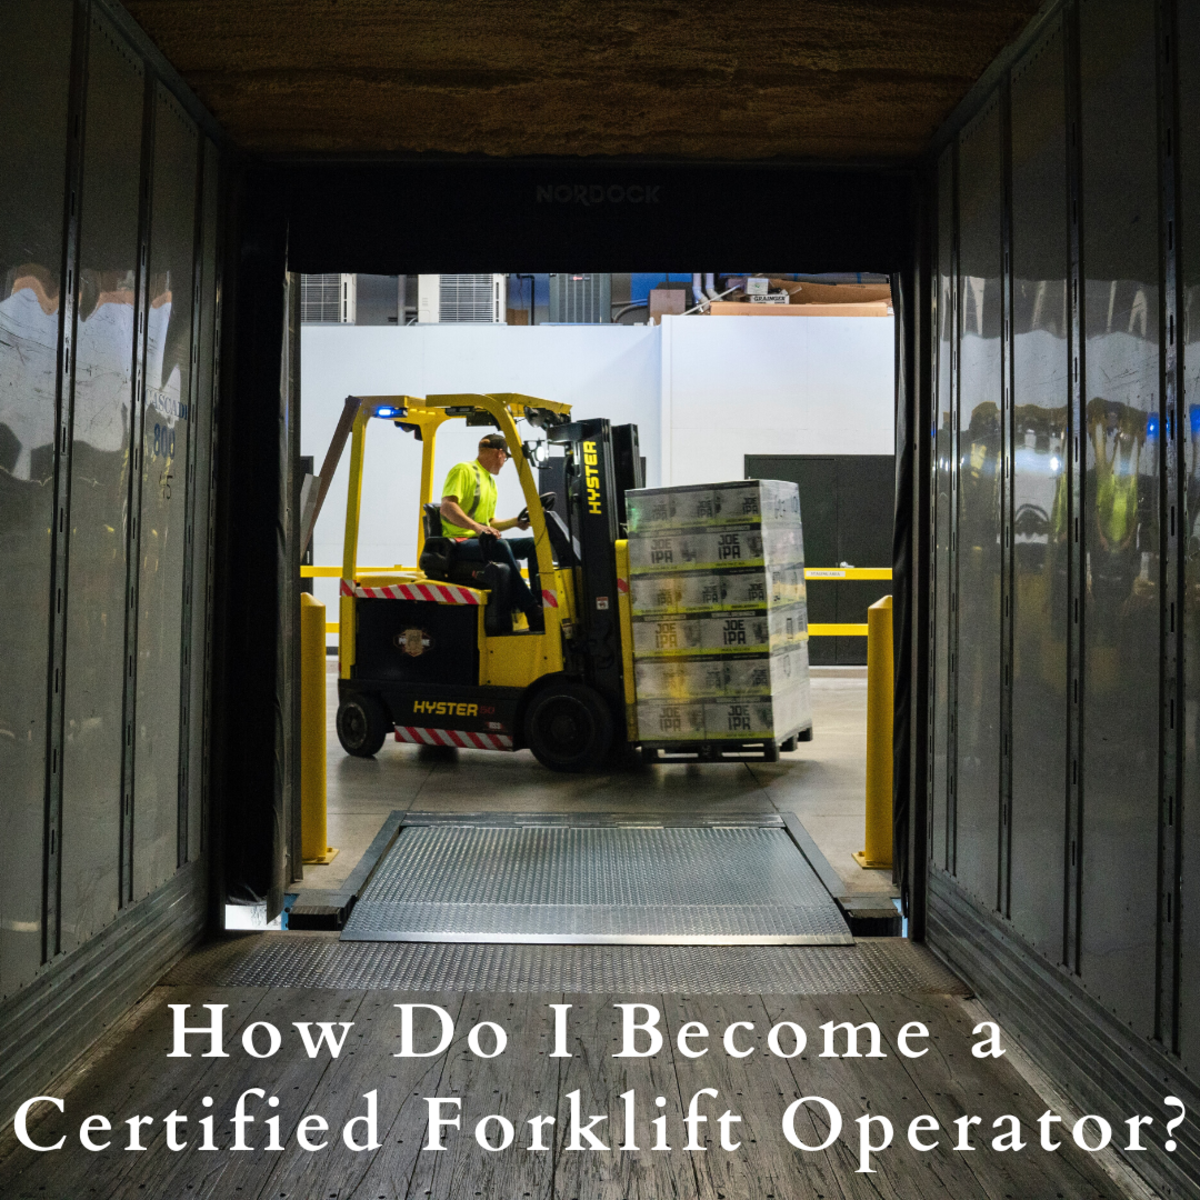 How Do I Become a Certified Forklift Operator?